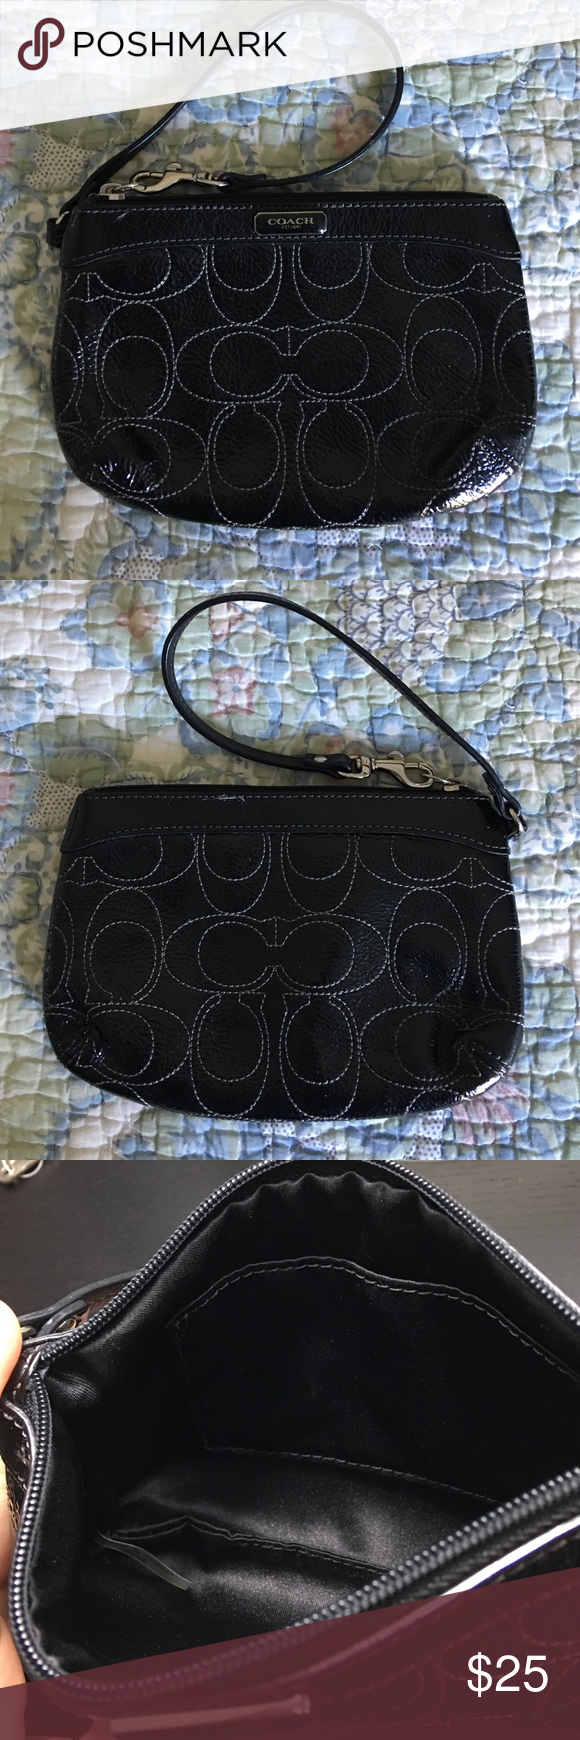 Coach Patent Wristlet Coach patent leather wristlet. No damage. Like new except the tag that usually hangs on the strap has fallen off. Coach Bags Clutches & Wristlets